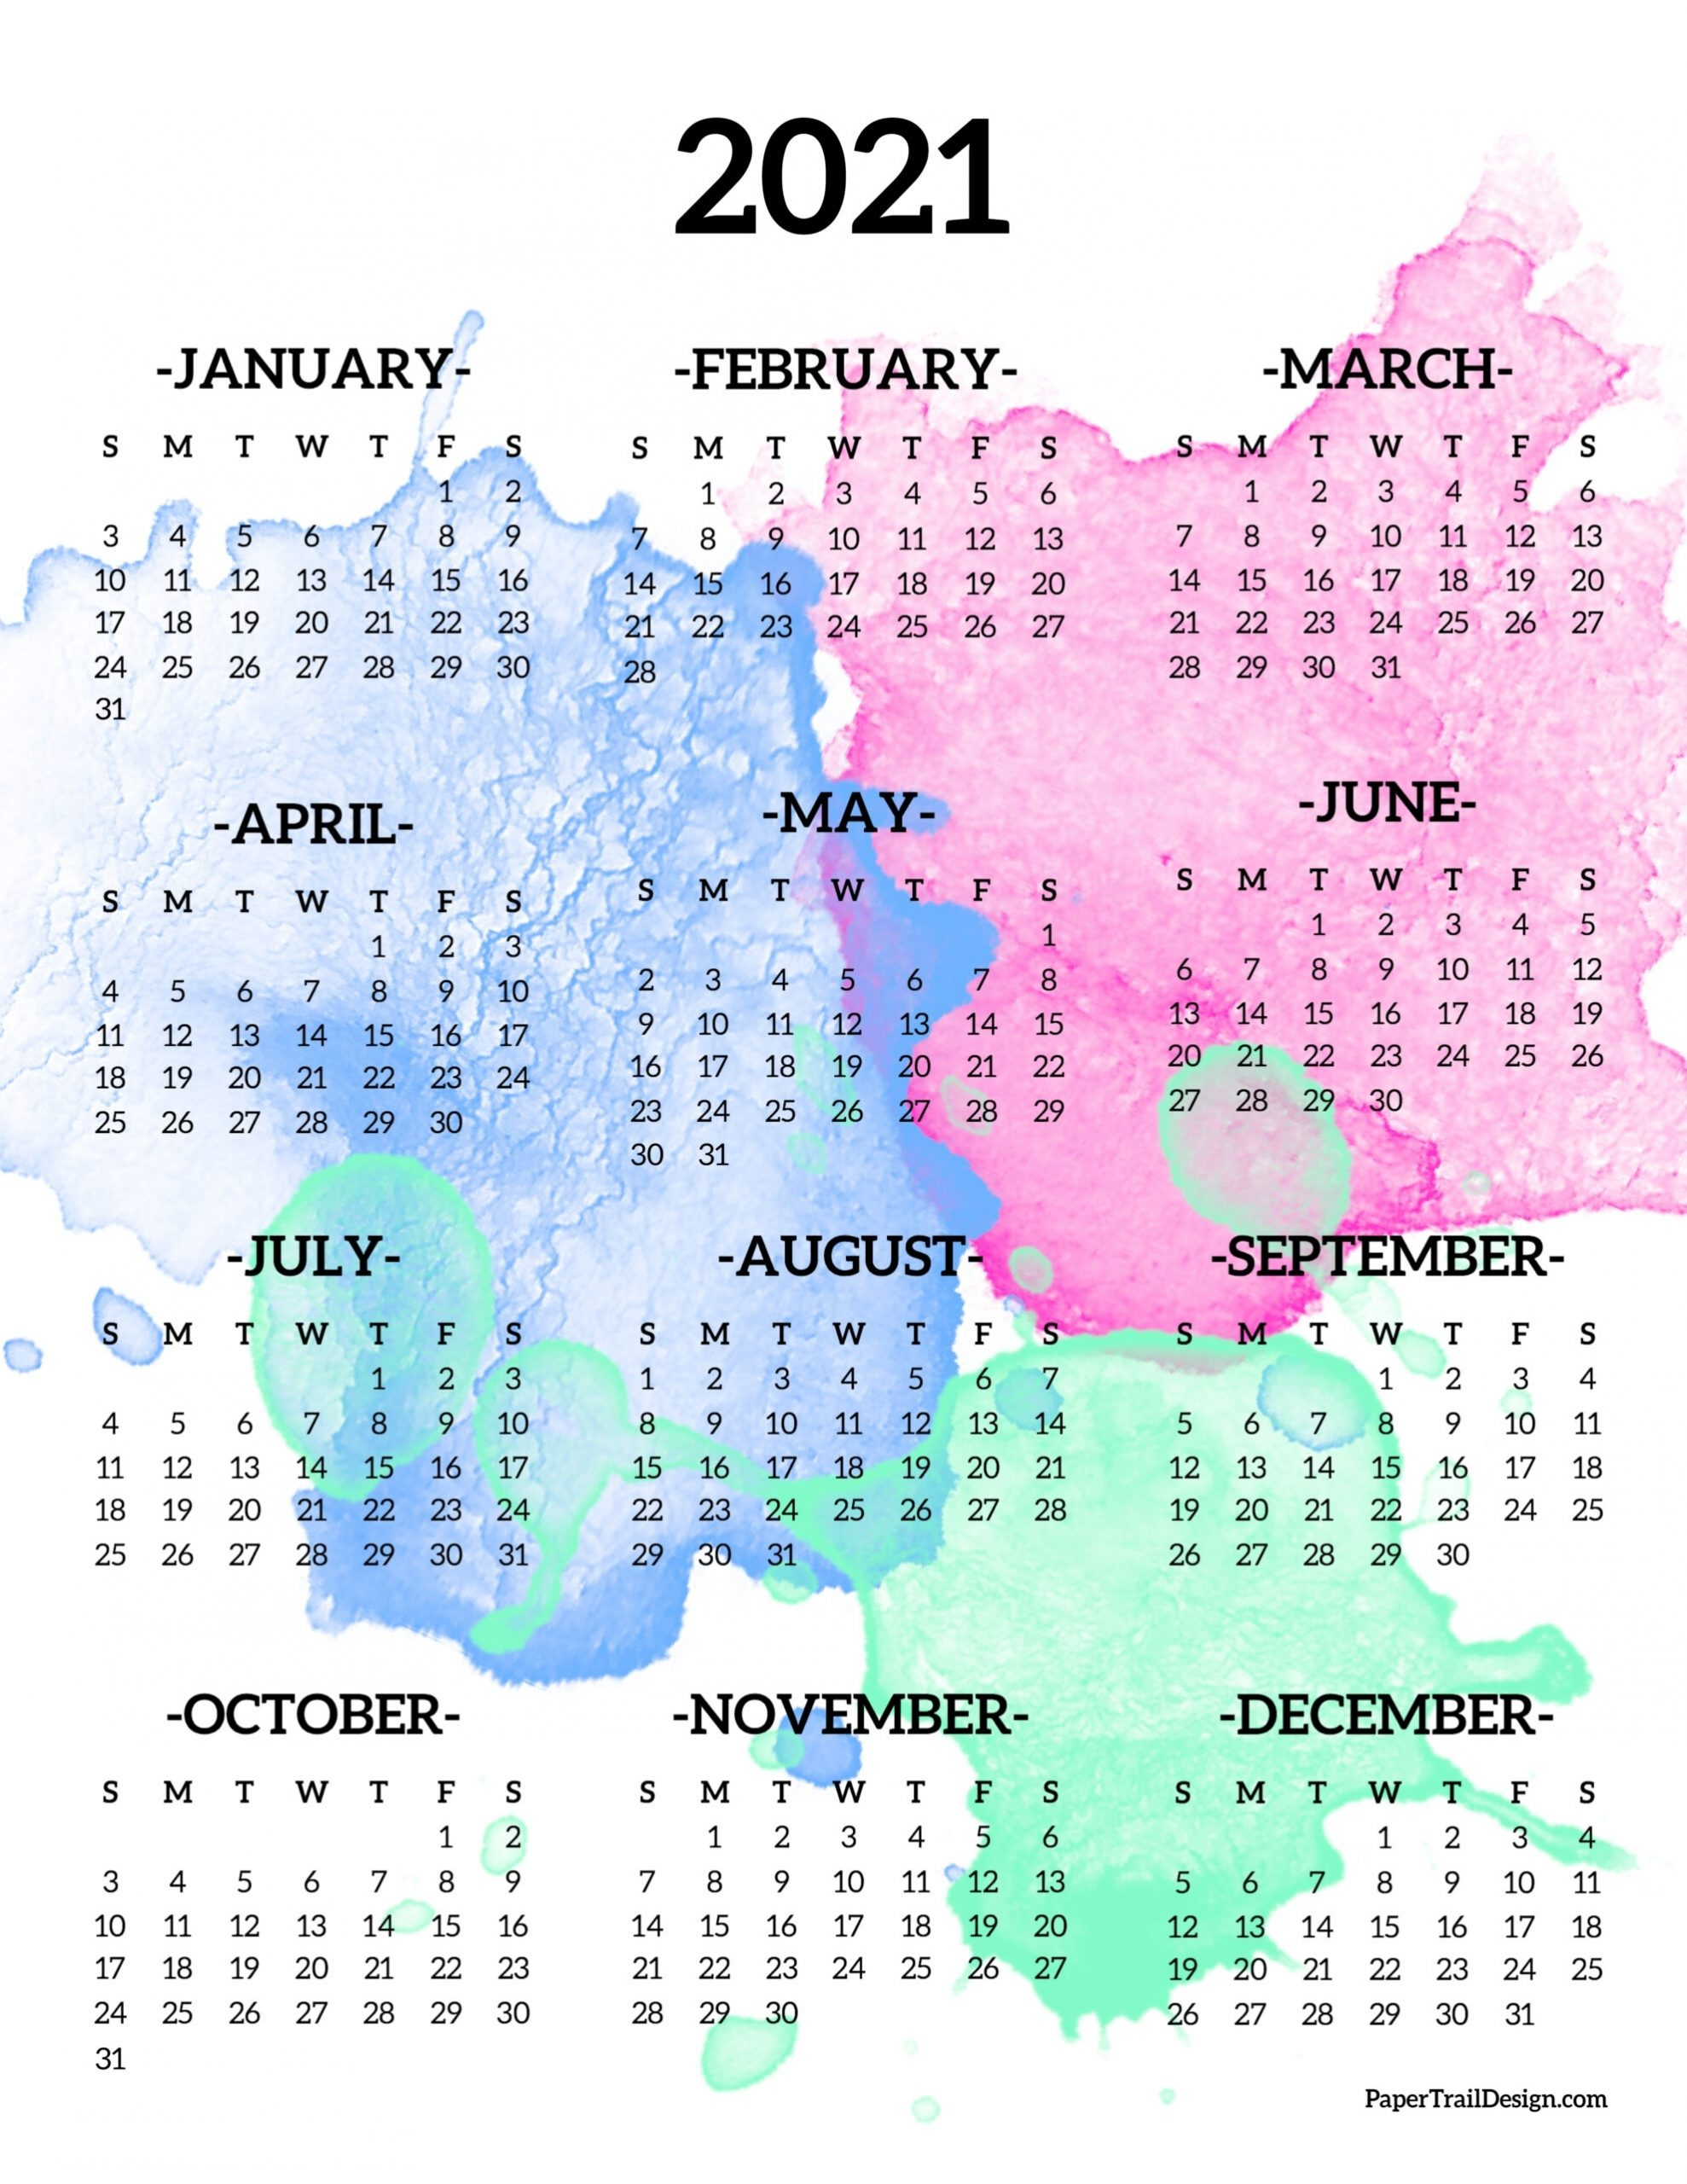 Calendar 2021 Printable One Page | Paper Trail Design